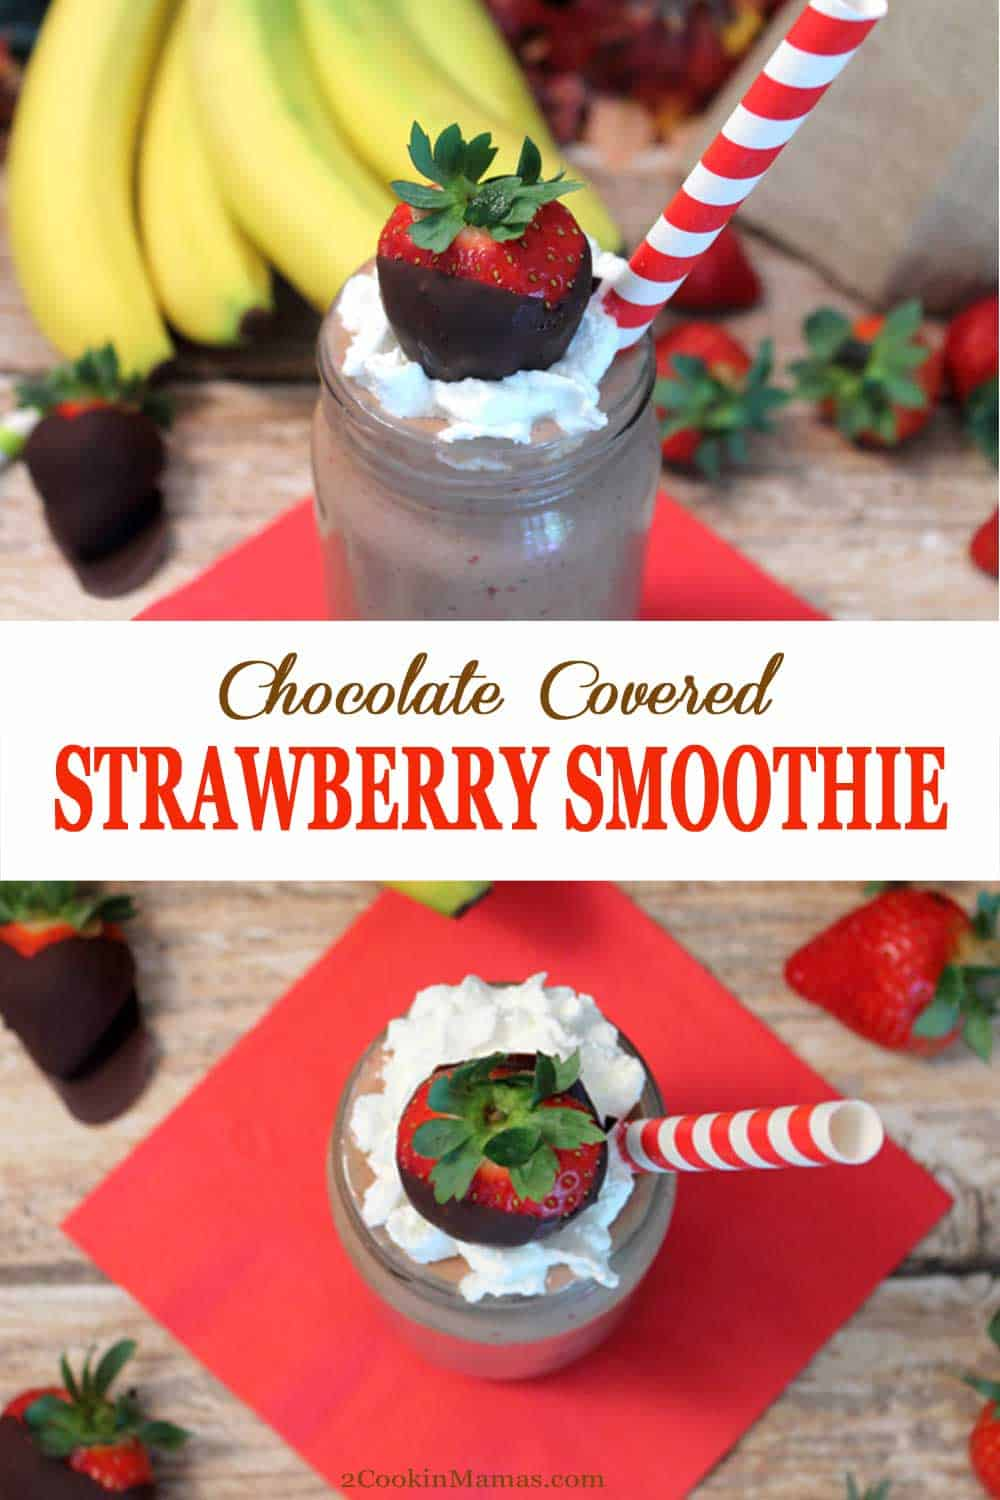 Get energized & stay healthy with this Chocolate Covered Strawberry Smoothie. An antioxidant-packed mix of greens, fruits & vegetables that tastes like you\'re eating chocolate covered strawberries.  #smoothie #strawberries #healthy #chocolate #breakfast #recipe